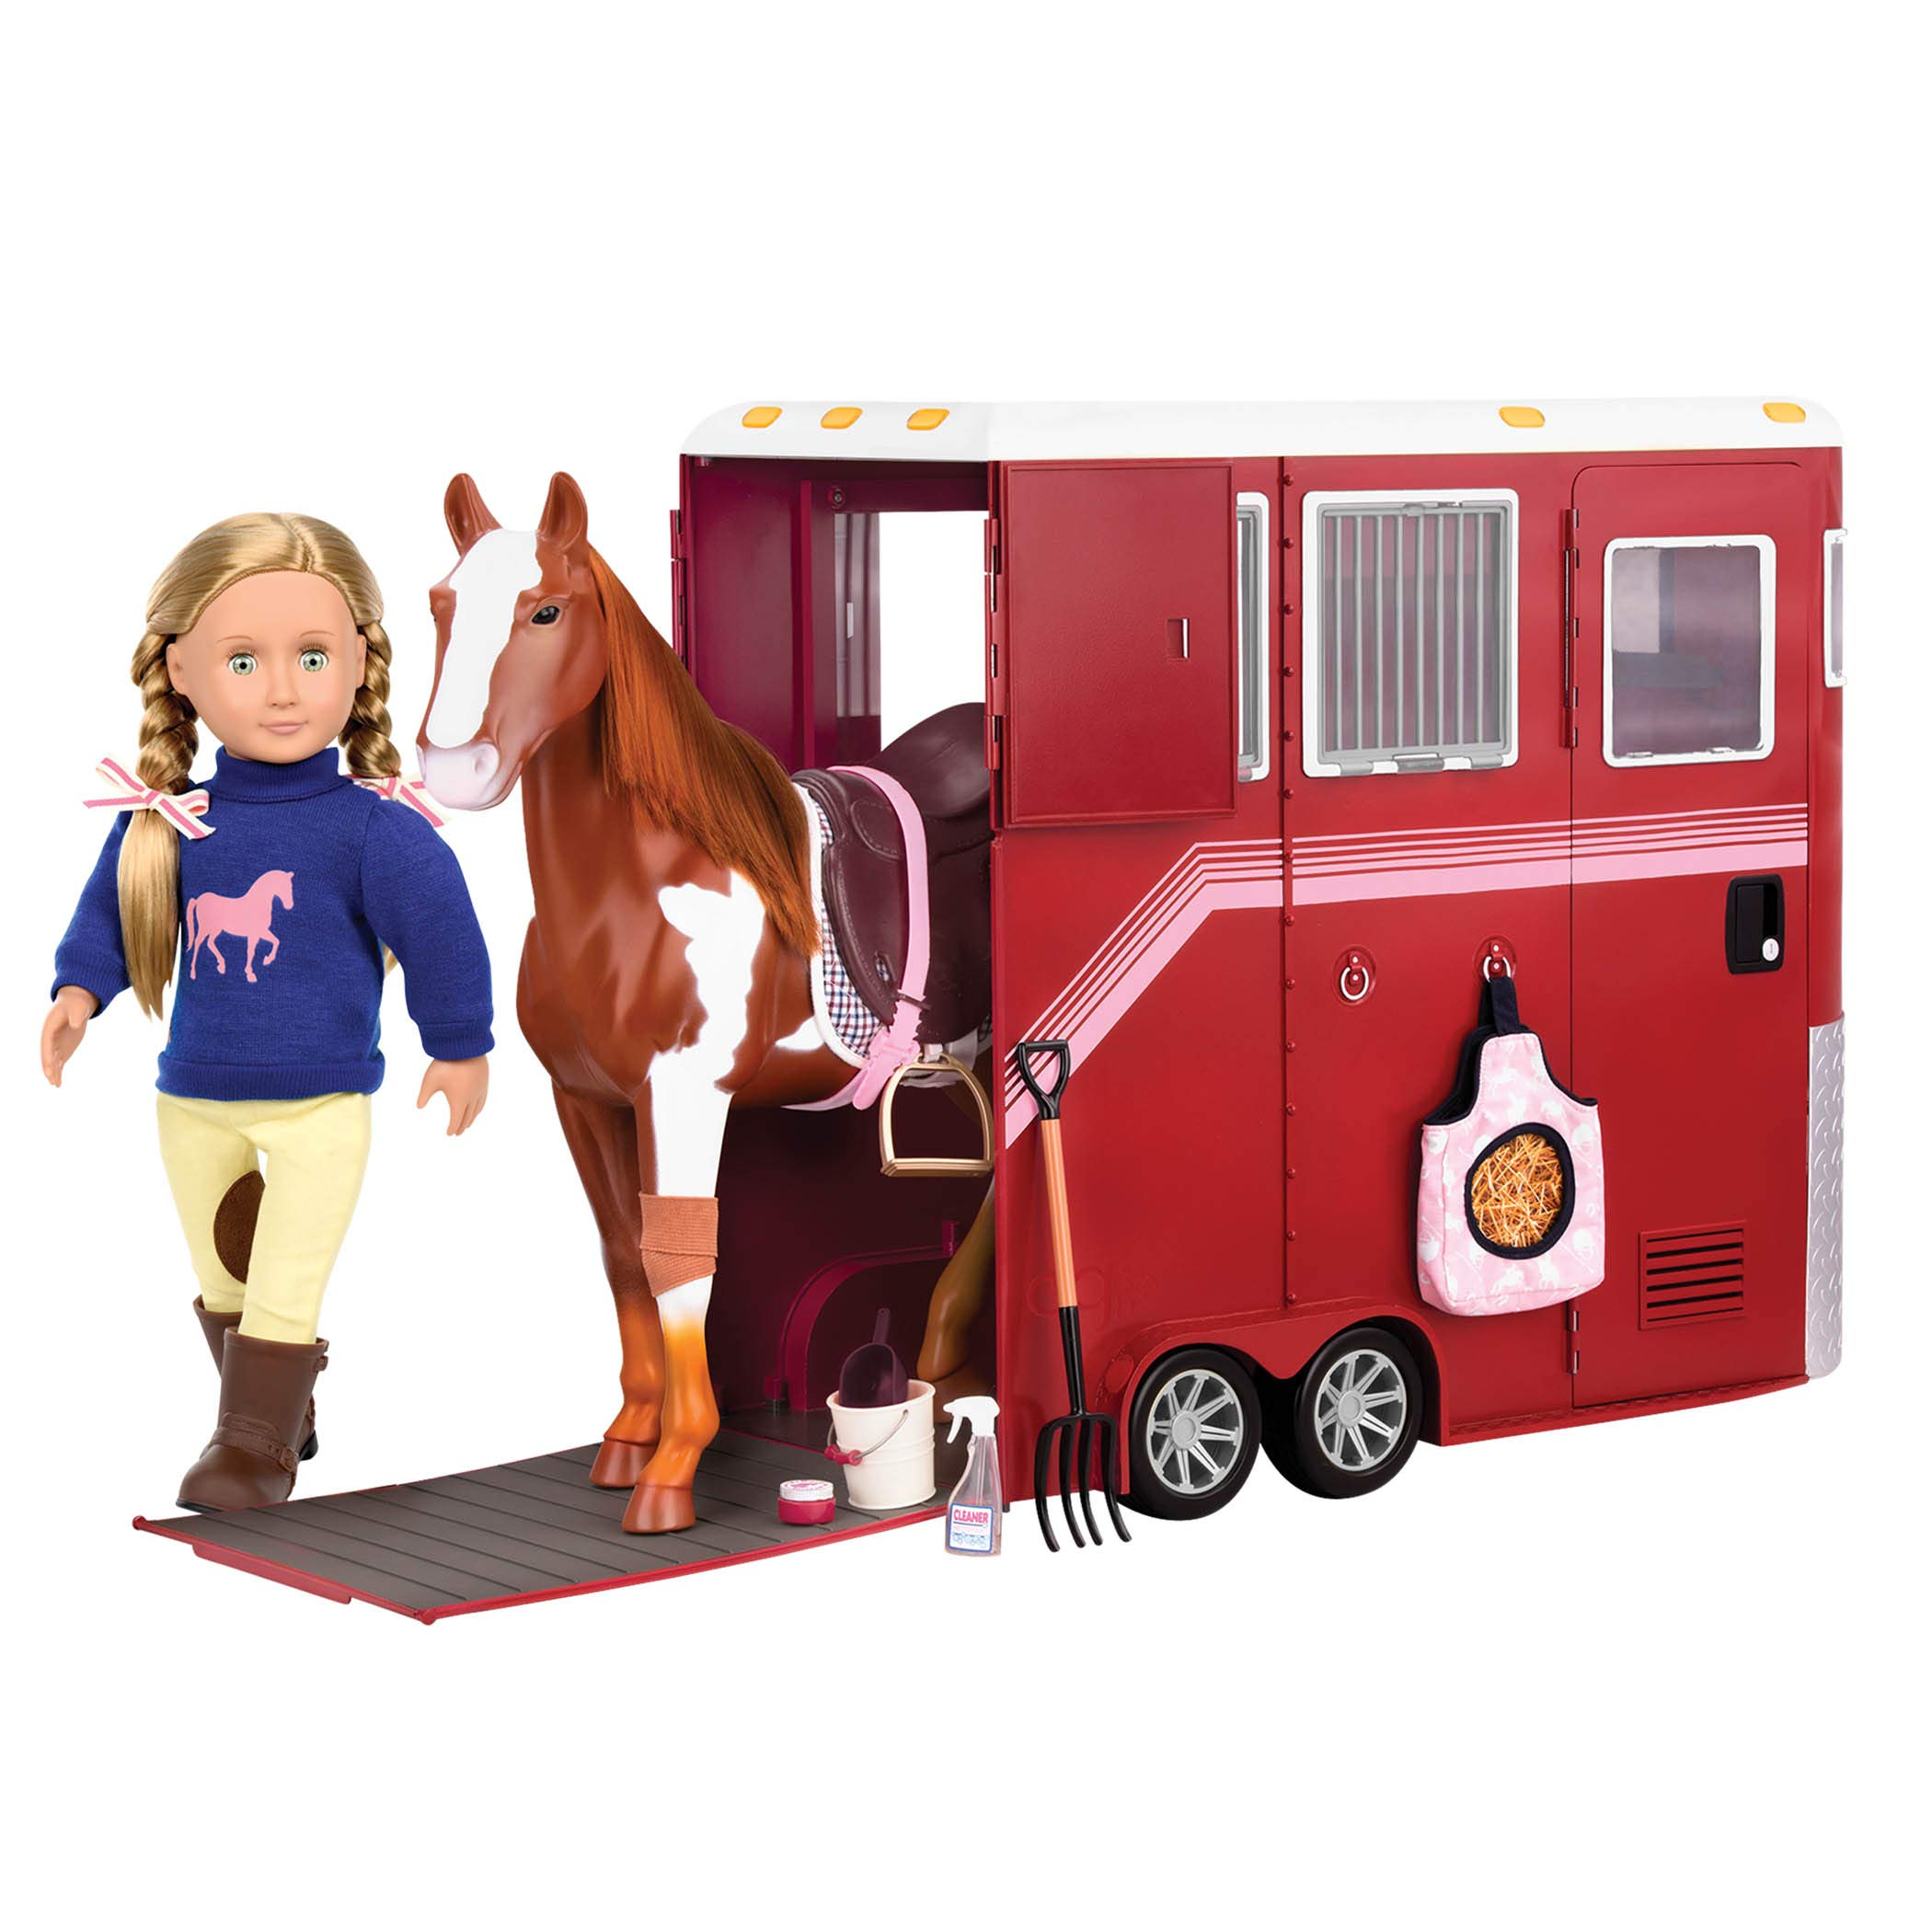 Our Generation BD38017Z Caballo Appaloosa 51 cm